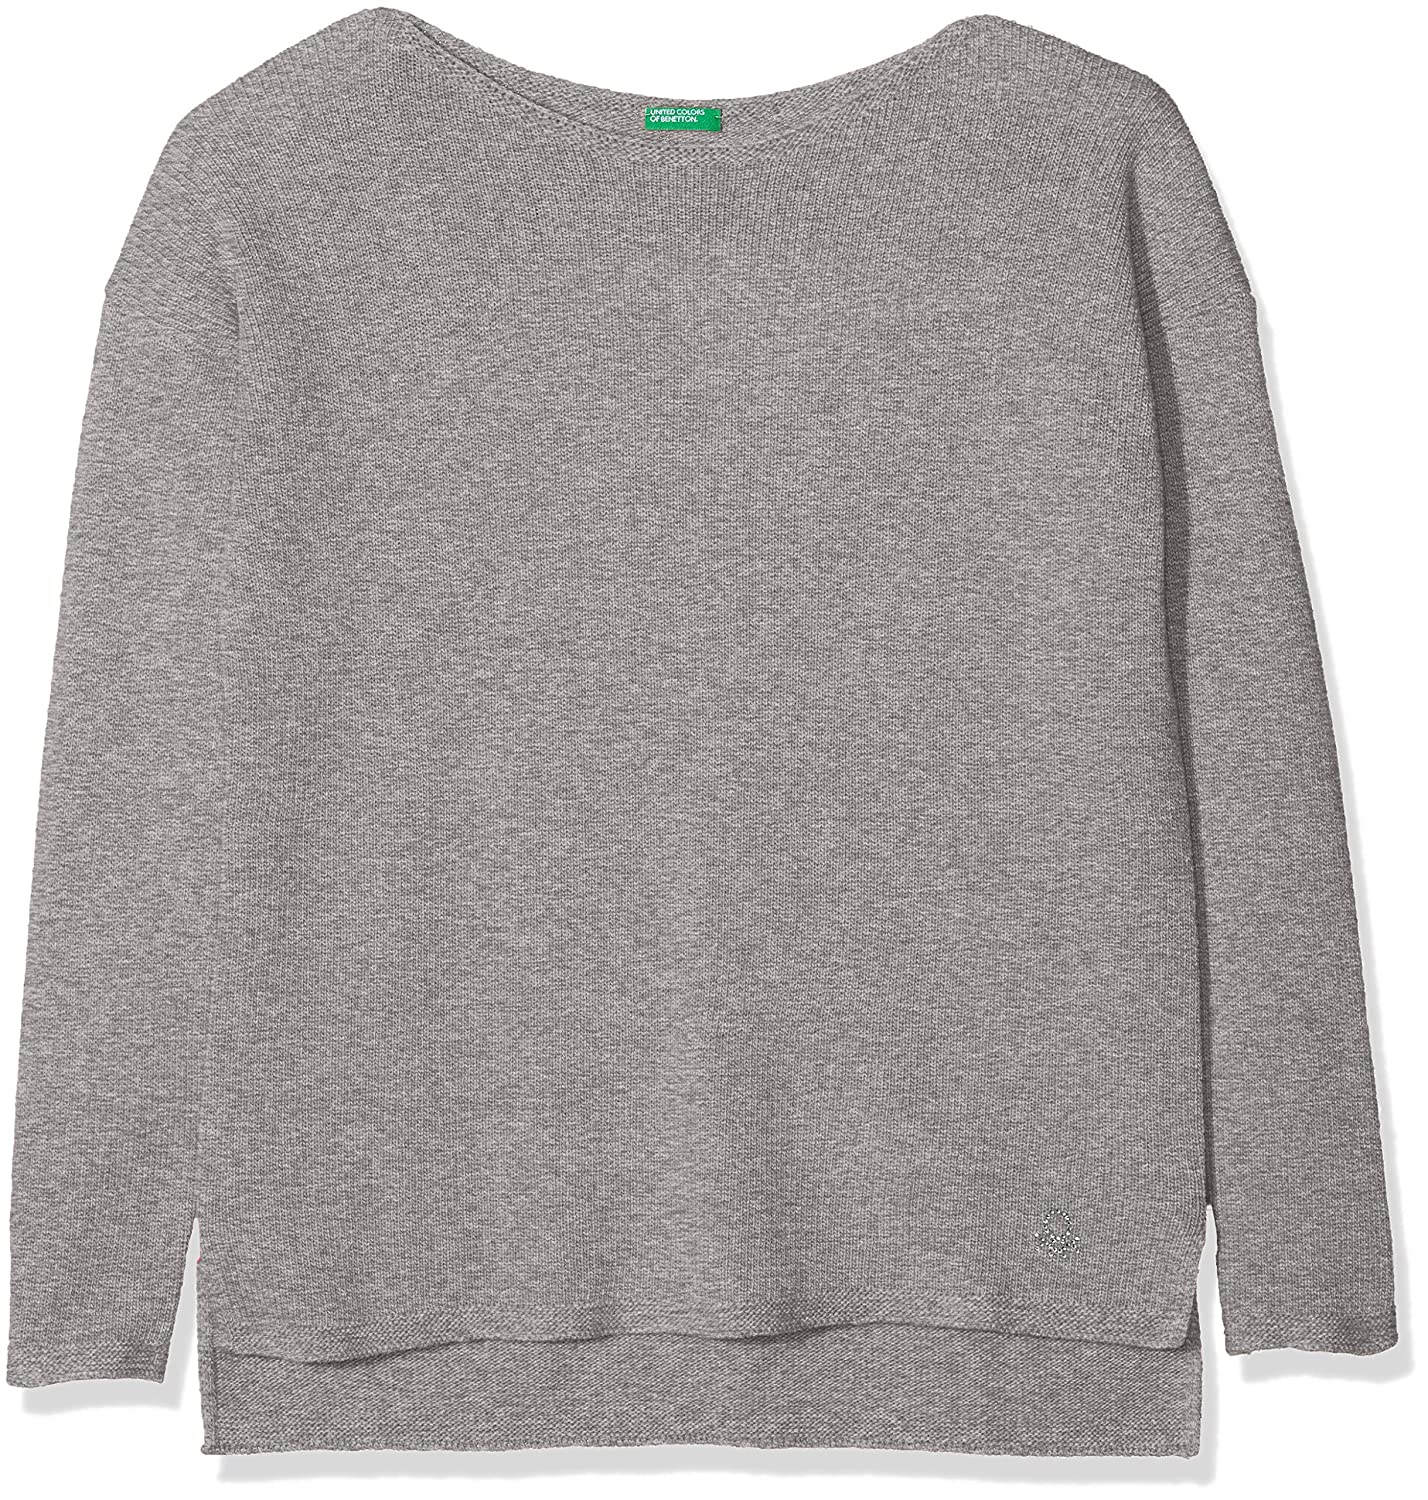 United Colors of Benetton Sweater L/S, Sudadera para Niñas: Amazon.es: Ropa y accesorios